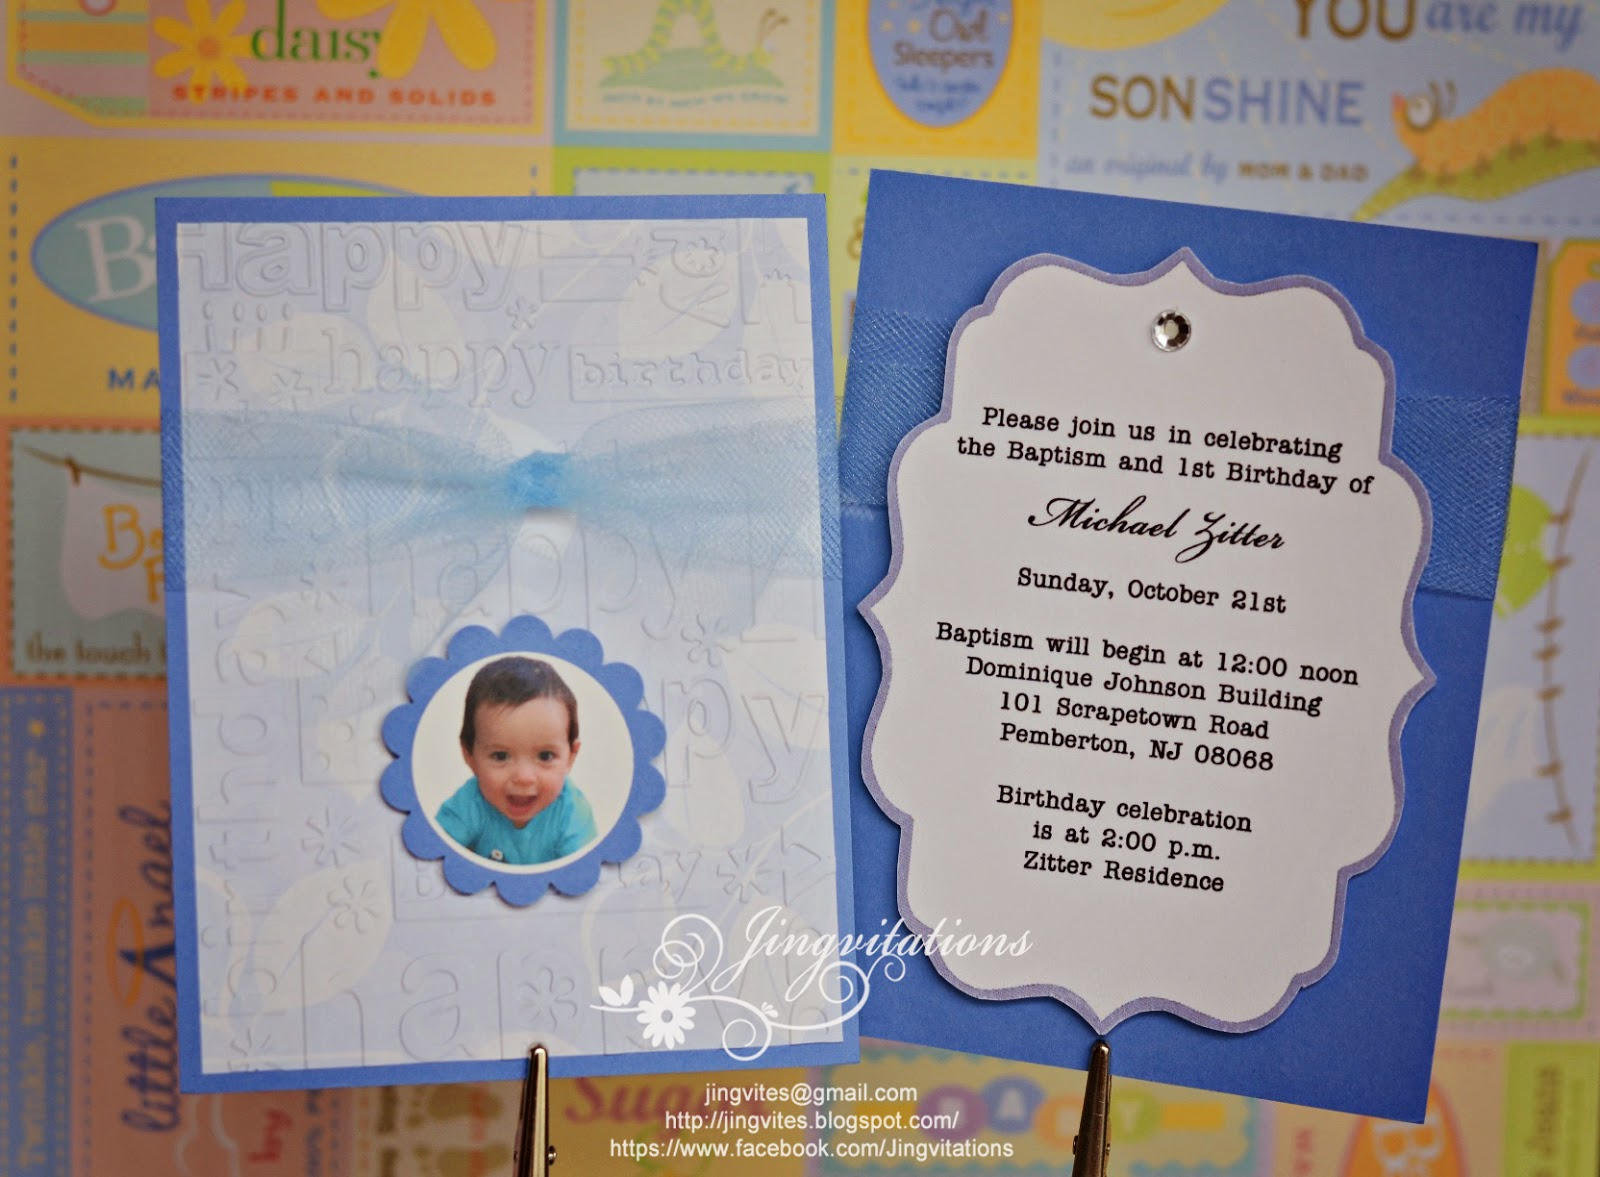 Jingvitations baptism and first birthday invitations baptism invitations first birthday invitations stopboris